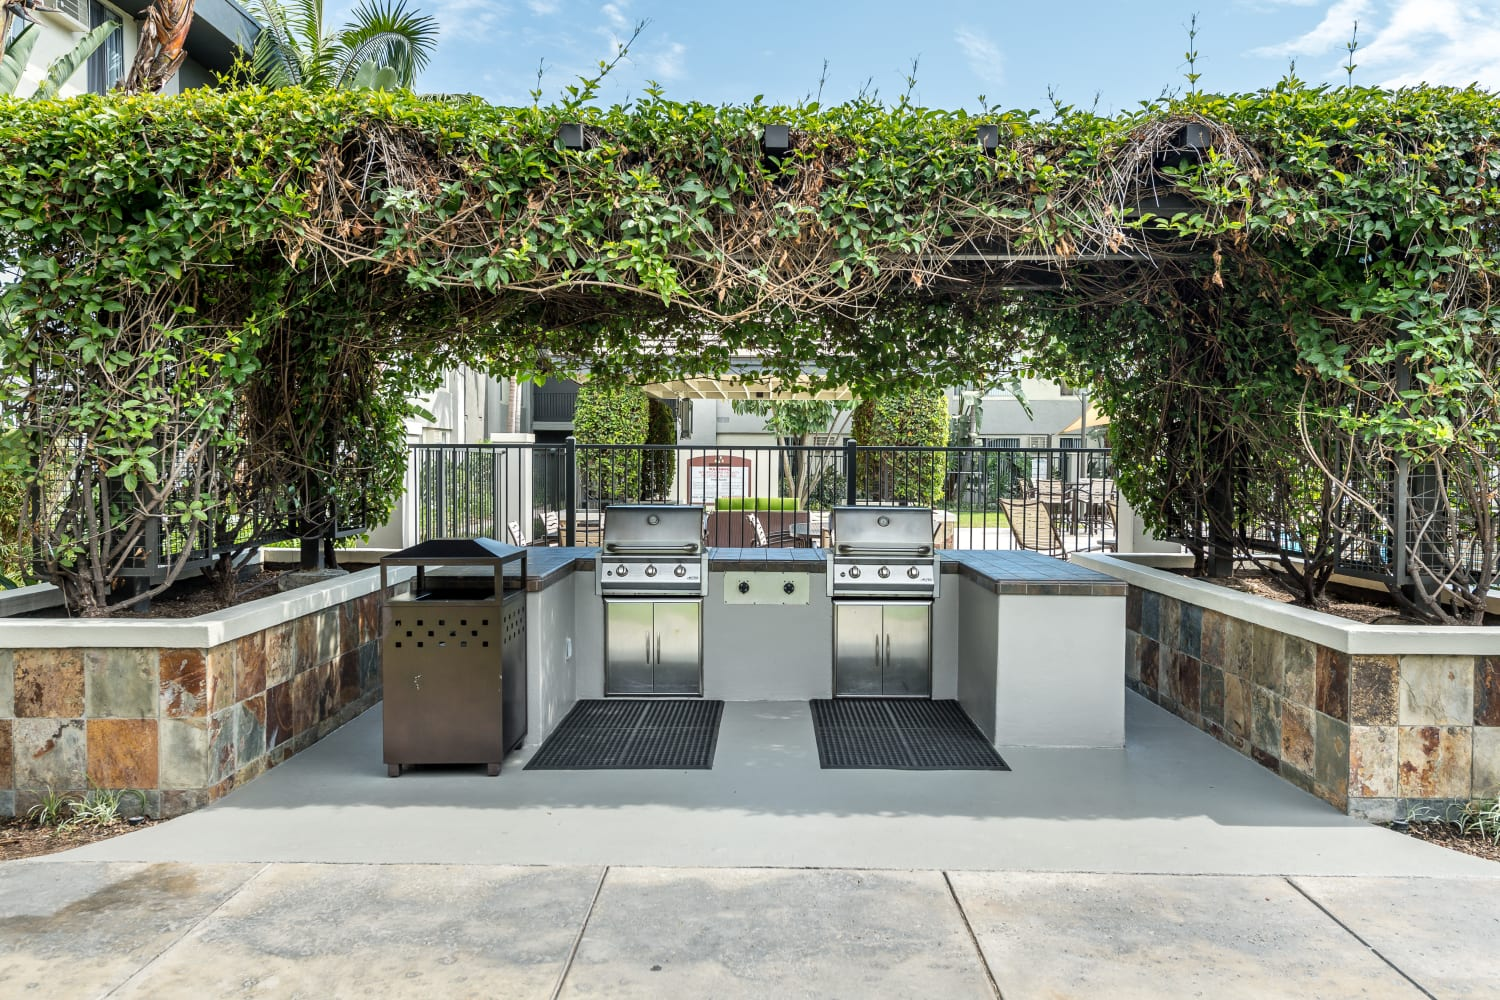 UCE Apartment Homes in Fullerton, California, offers an outdoor barbecue area